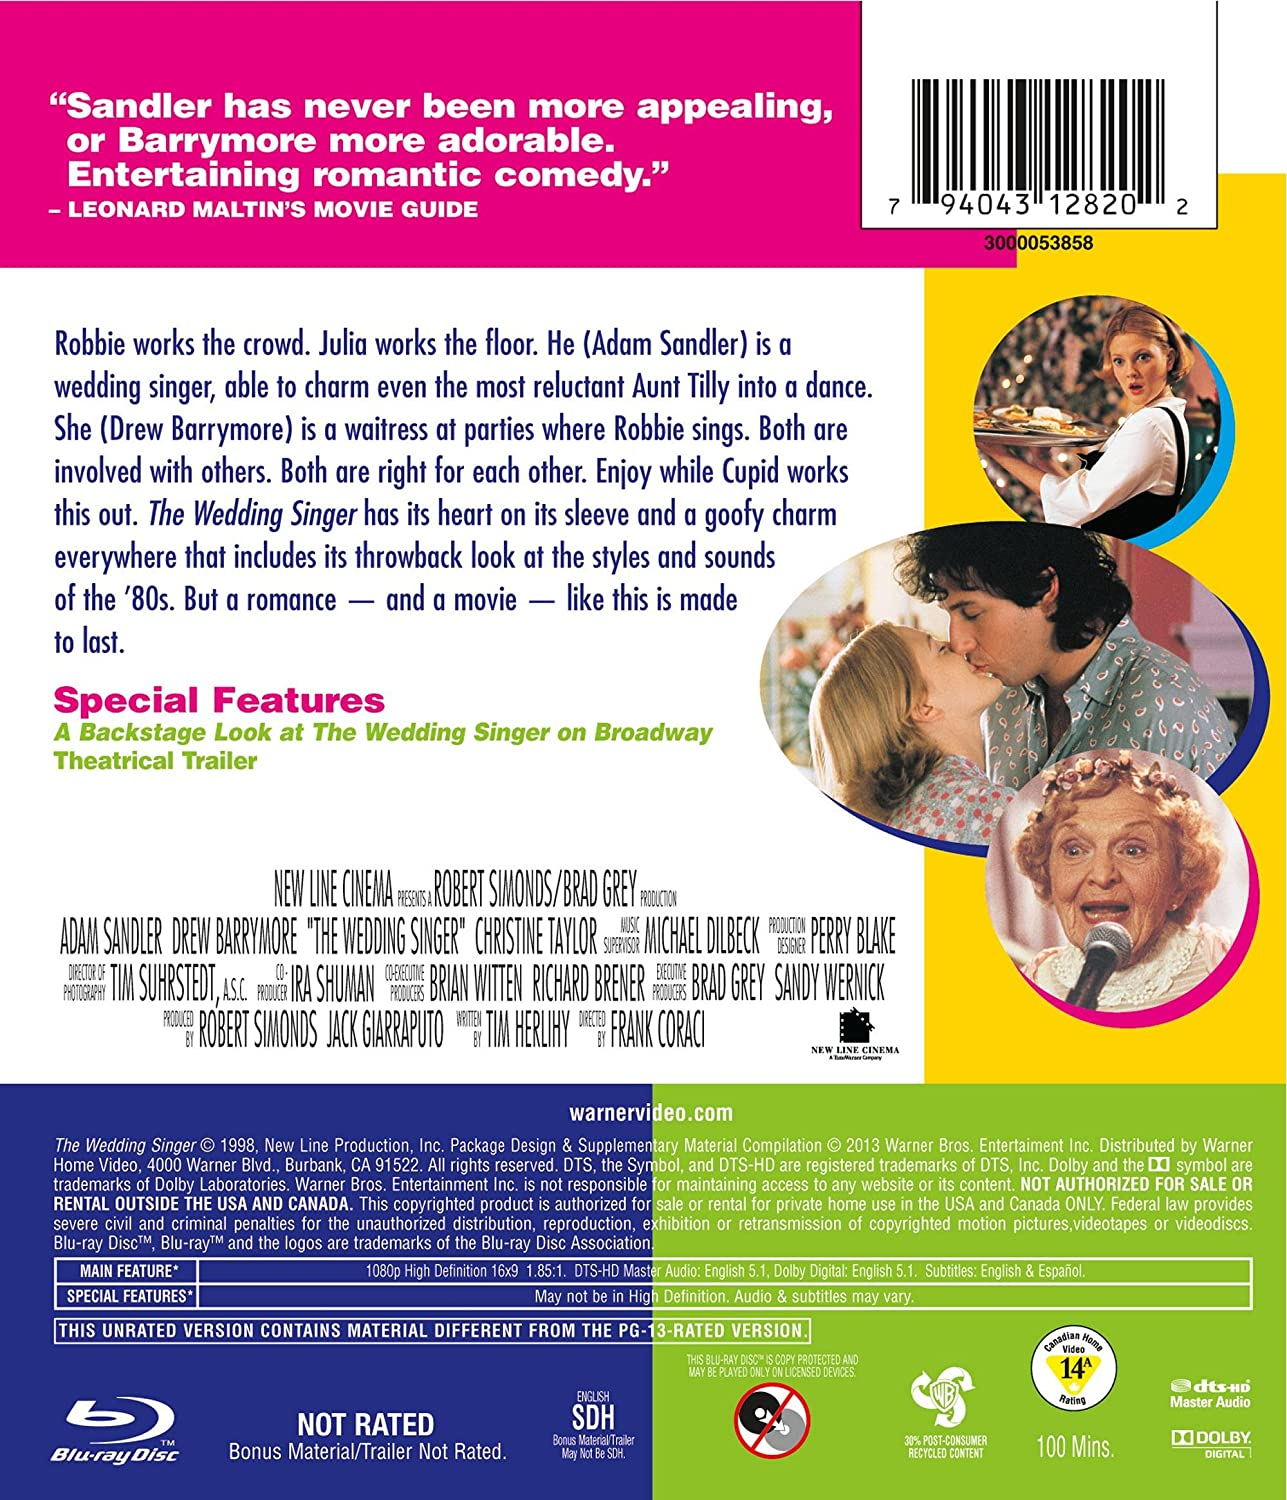 Amazon The Wedding Singer Totally Awesome Edition Blu Ray Frank Coraci Robert Simonds Brad Grey Sandy Wernick Jack Giarraputo Richard Brener